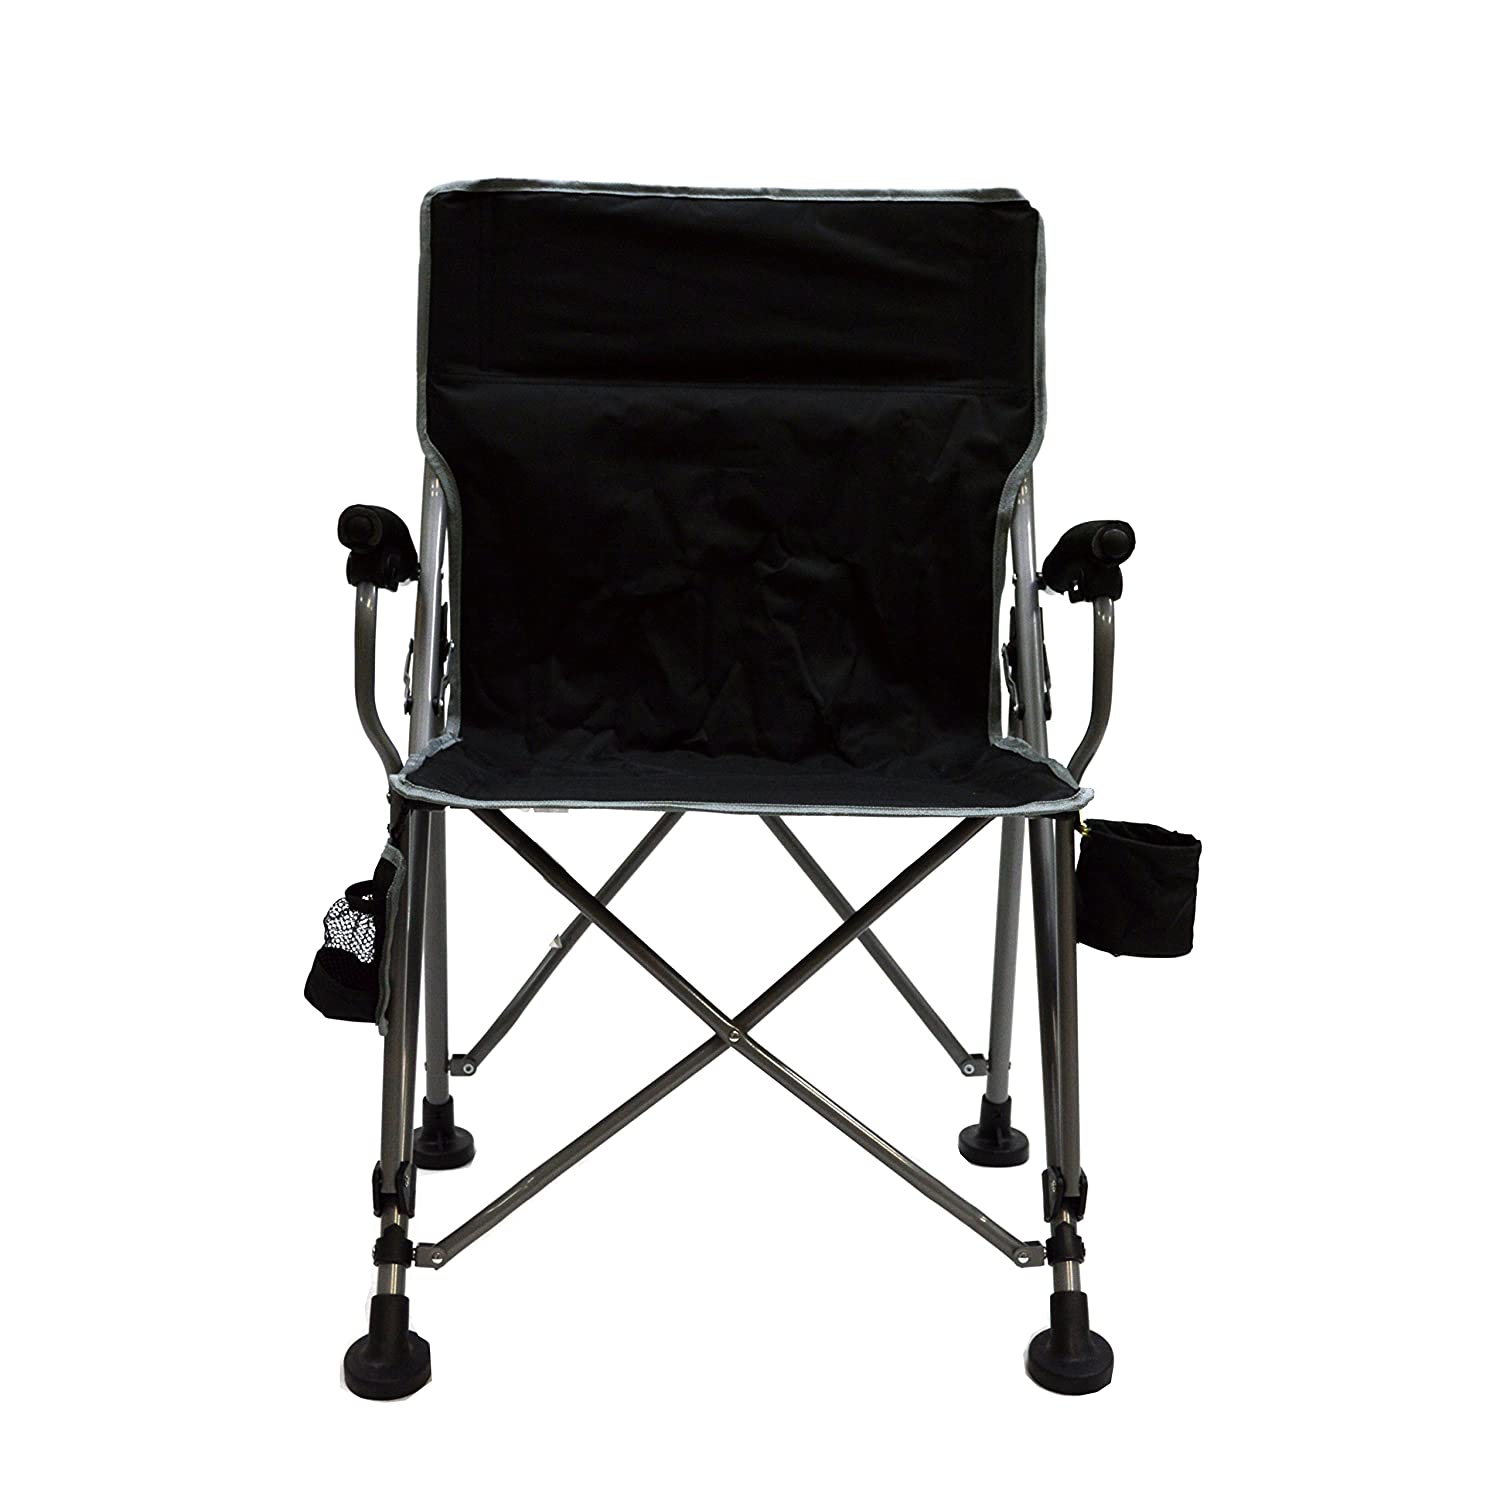 Amazon The Aviator Portable Armchair in Black Sports & Outdoors